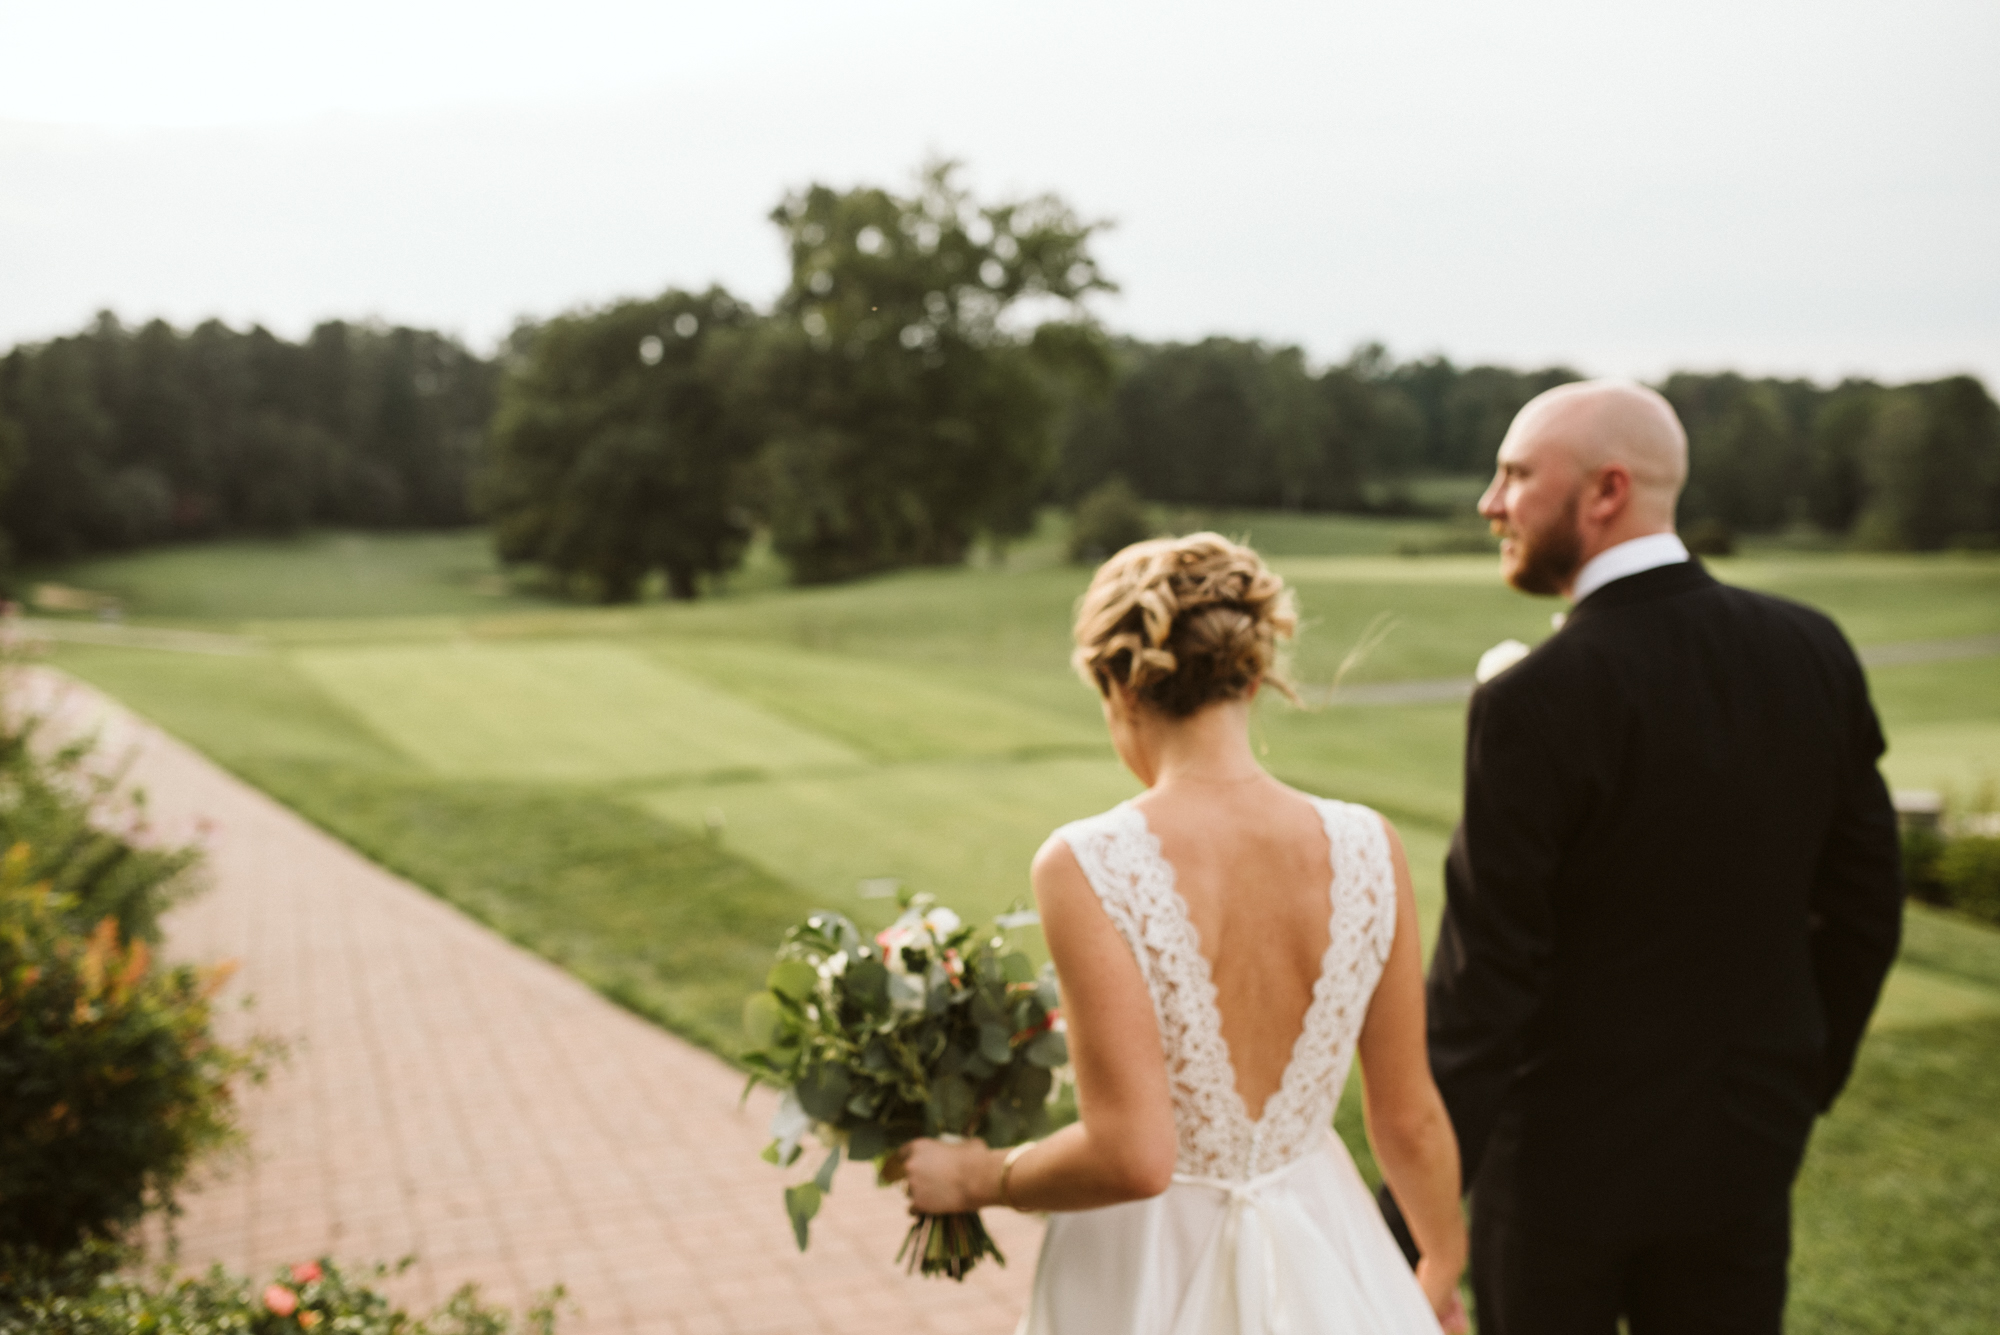 Elegant, Columbia Country Club, Chevy Chase Maryland, Baltimore Wedding Photographer, Classic, Traditional, Bridge and Groom Walking Holding Hands, BHLDN Dress, Lace Wedding Dress, Sweet Hairafter